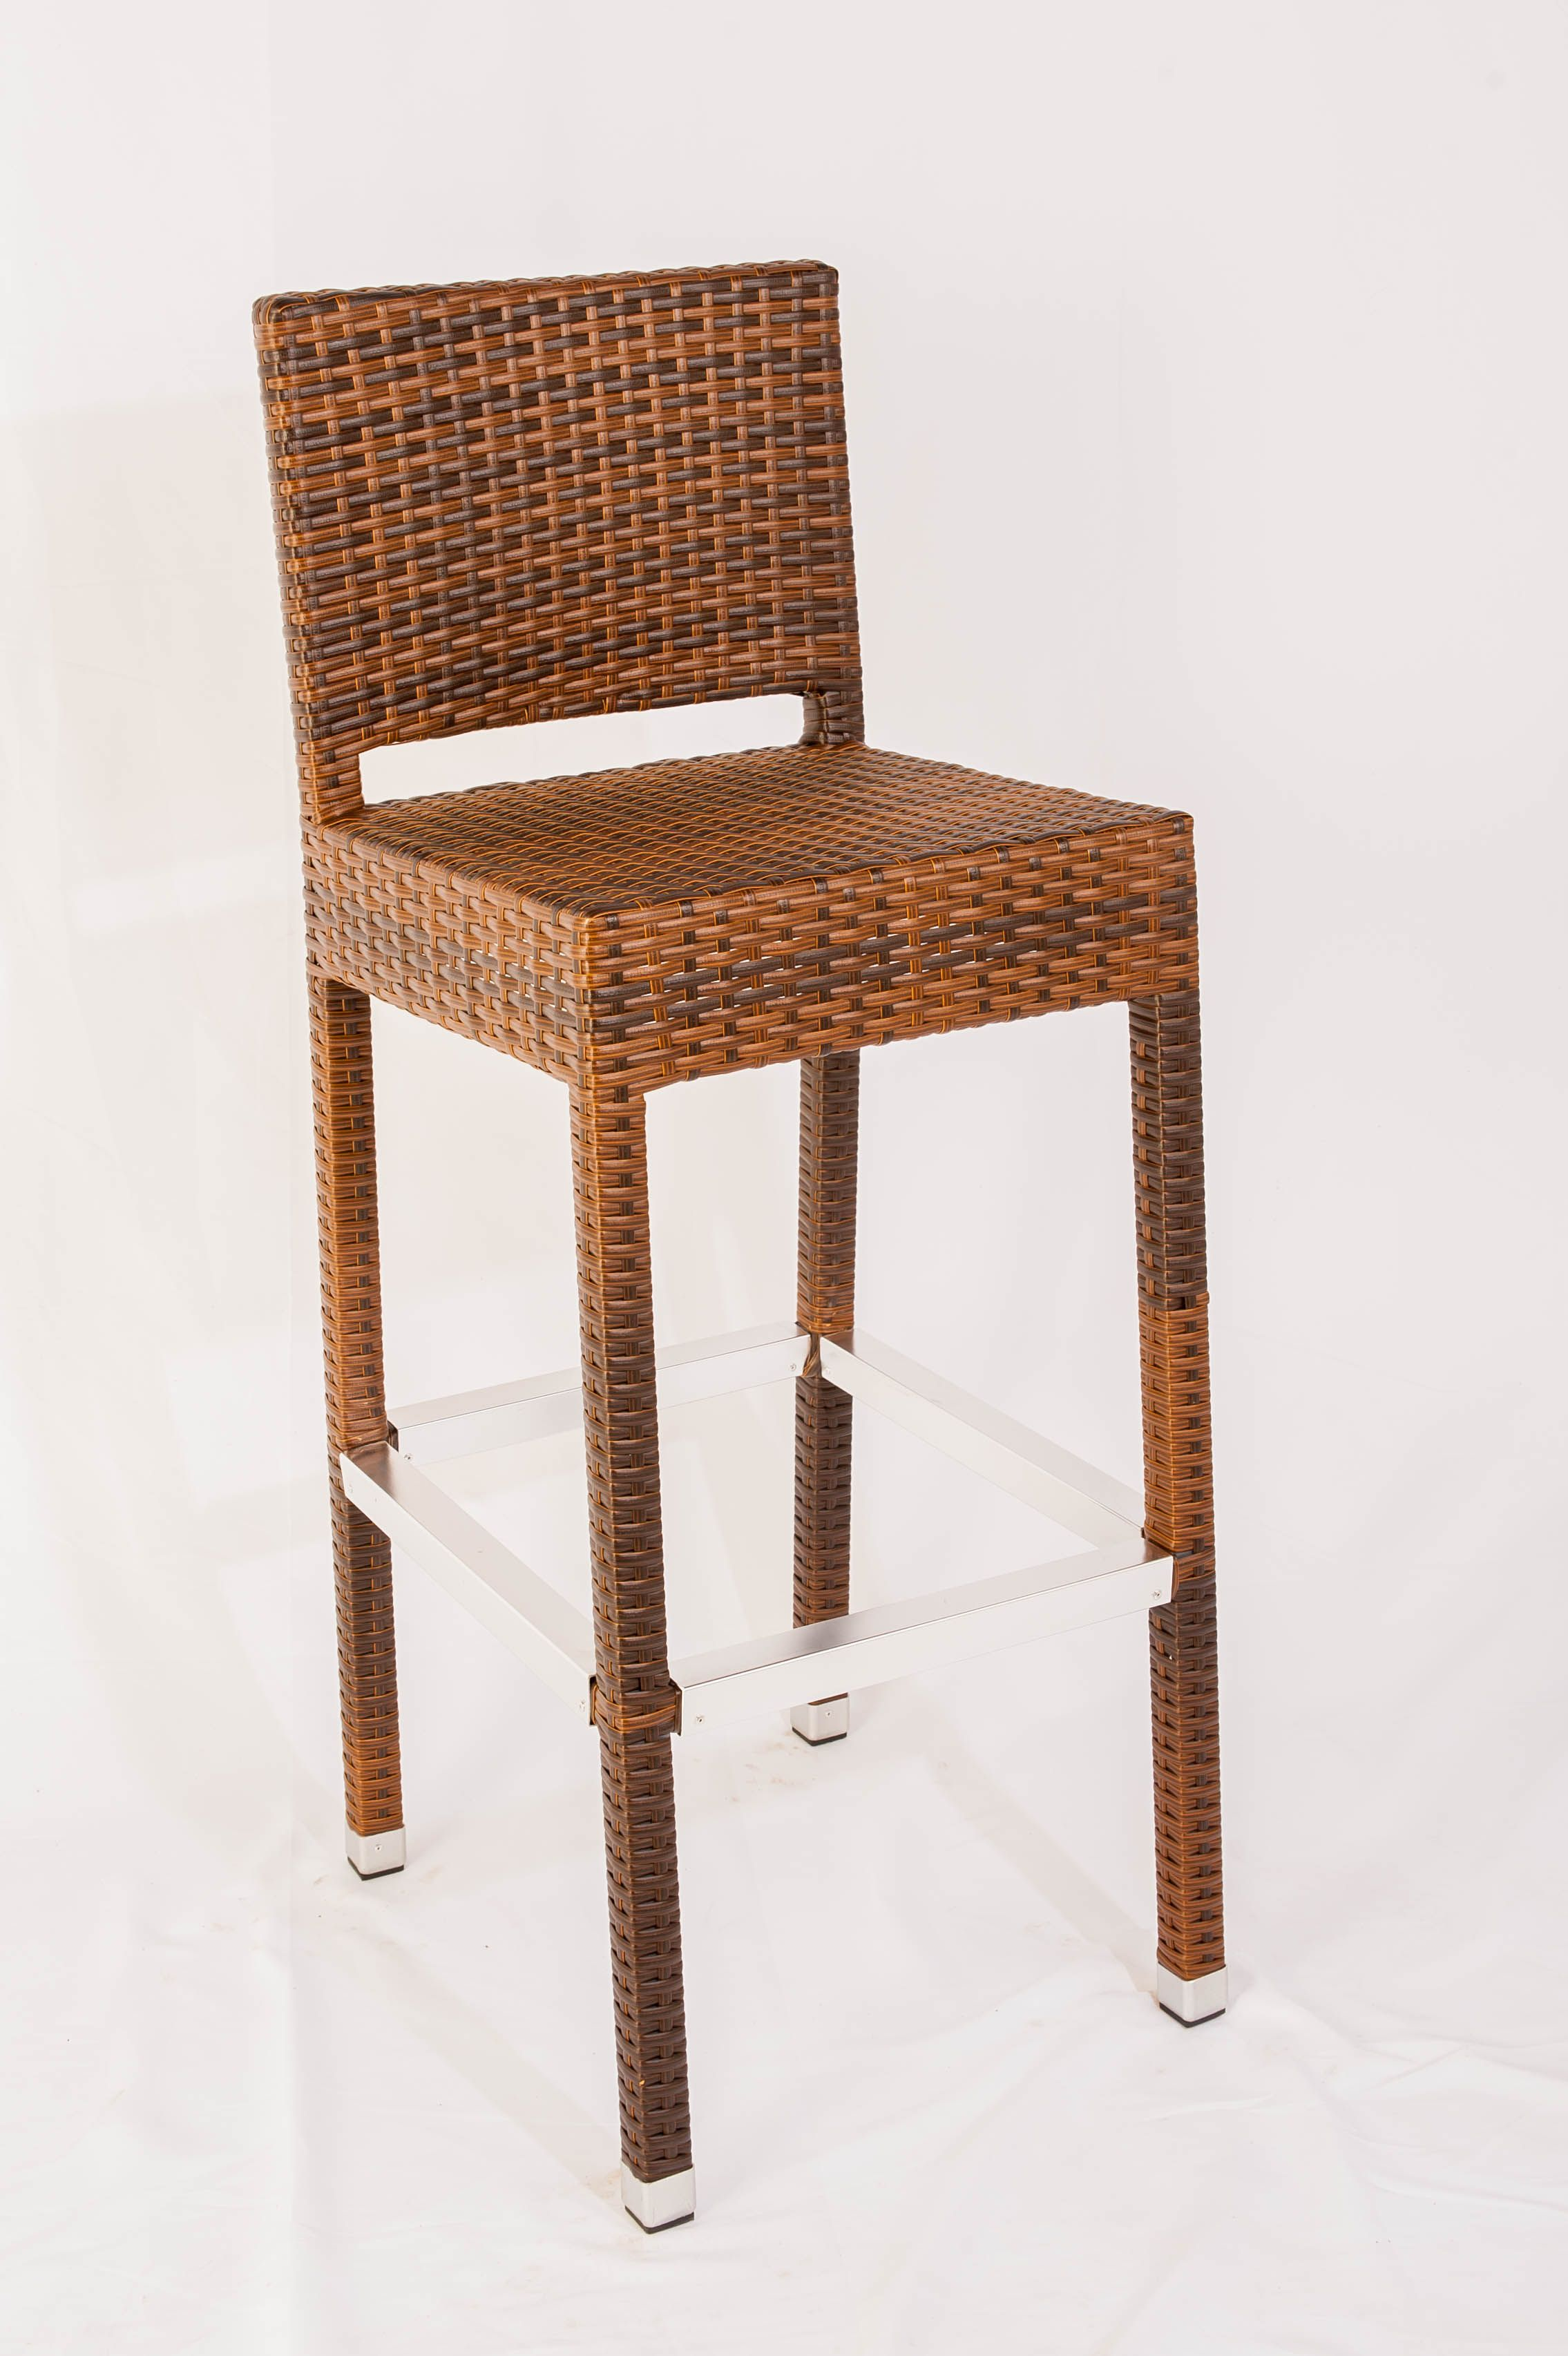 Stupendous Gamma Wicker Armless Bar Stool In 2019 Outdoor Seating Download Free Architecture Designs Scobabritishbridgeorg